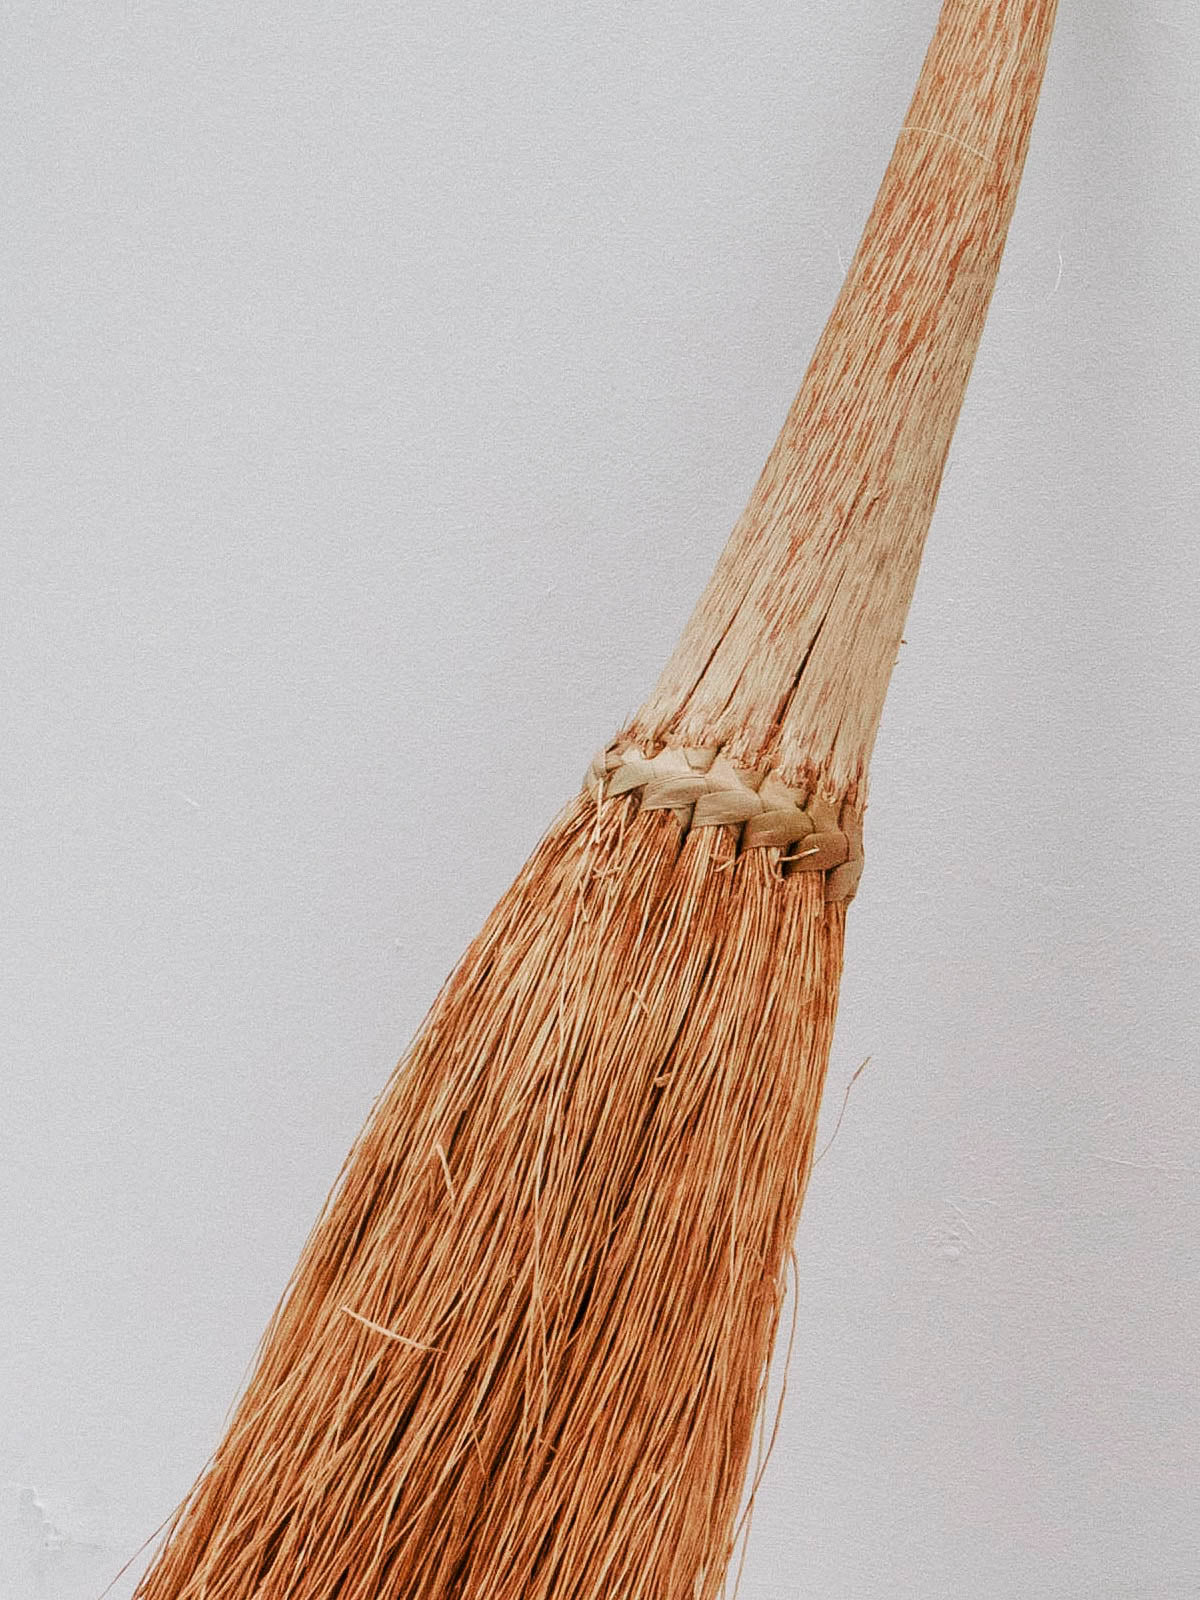 XAÏ-XAÏ HAND BROOM - Celestial - CELESTIAL - Sourced from artists in Europe, Asia and Africa, these limited edition pieces inspire a life of simplicity and style.